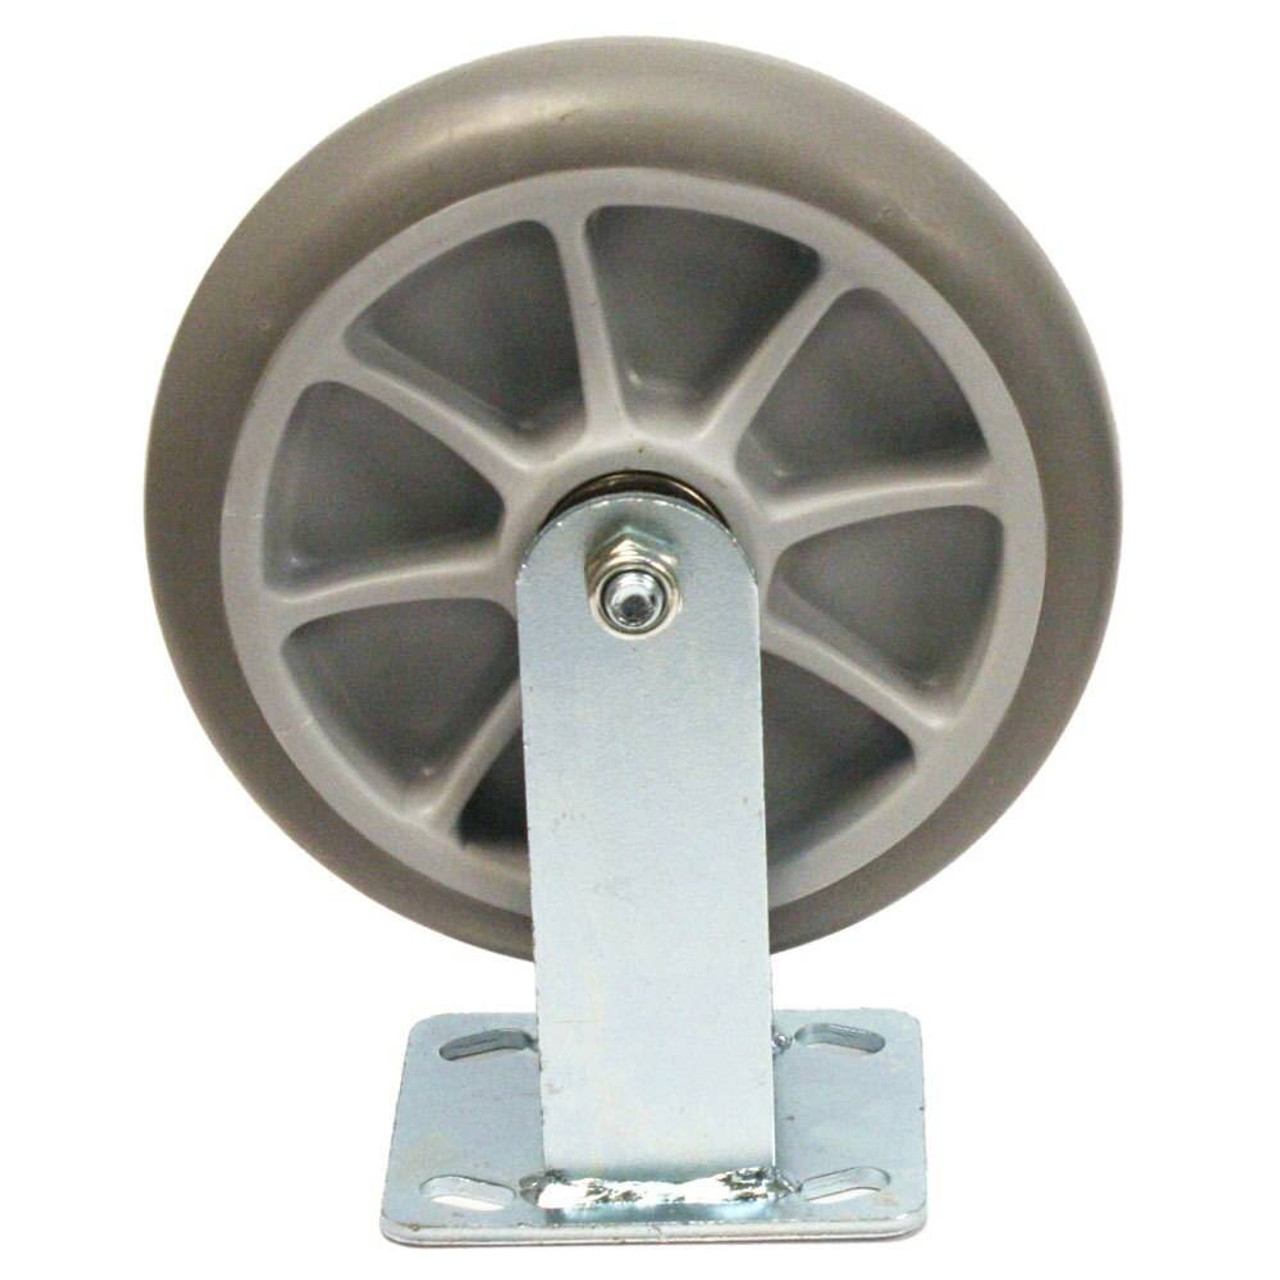 HOSPITALITY 1 SOURCE Hospitality 1 Sourceor 8 Replacement Cart Wheels